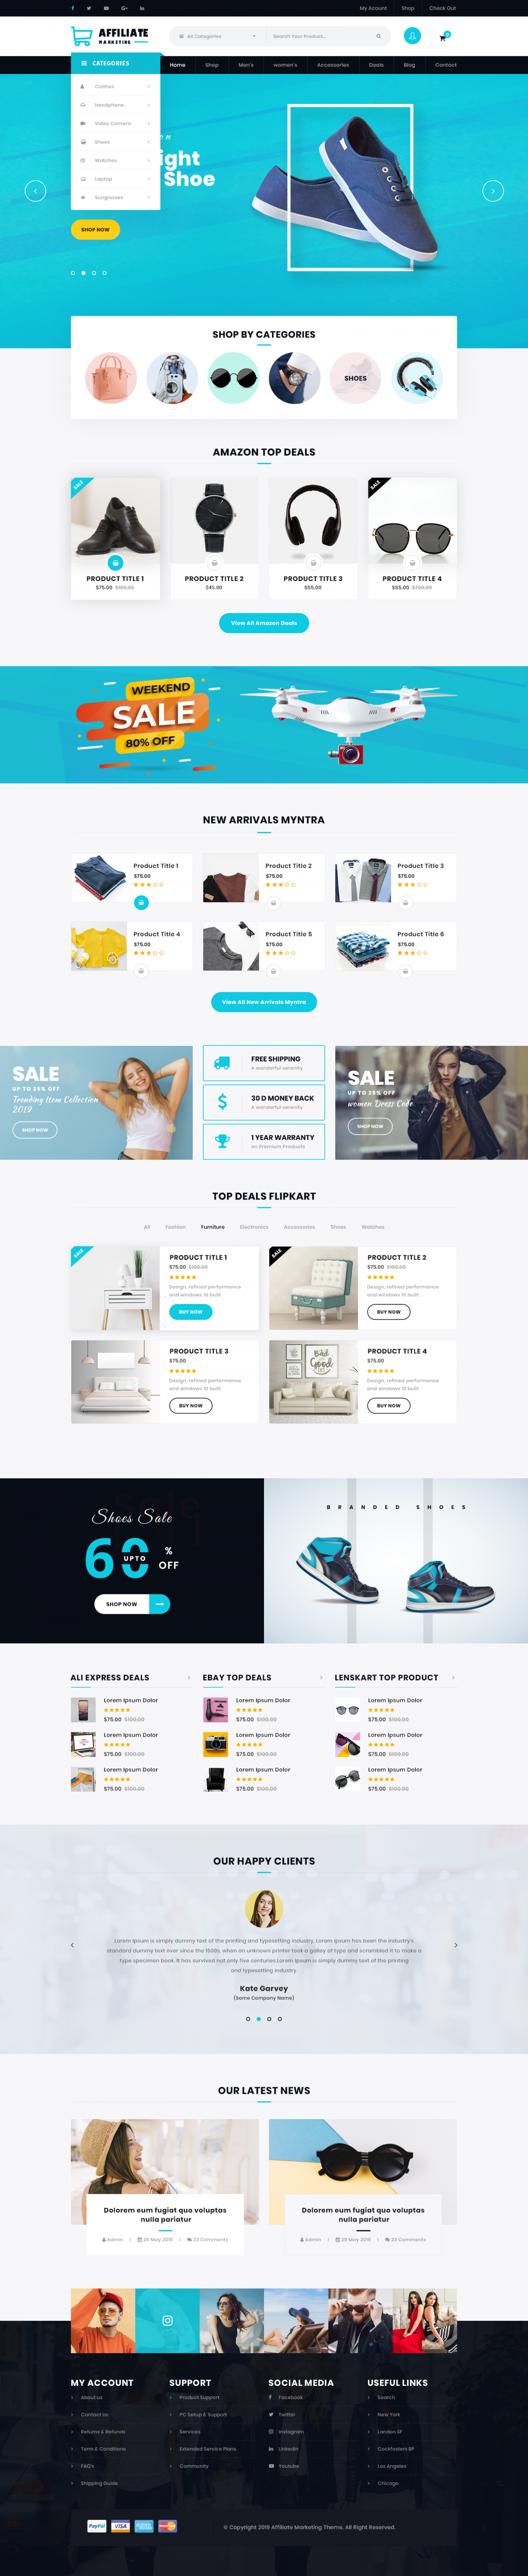 Affiliate Marketing WordPress Theme